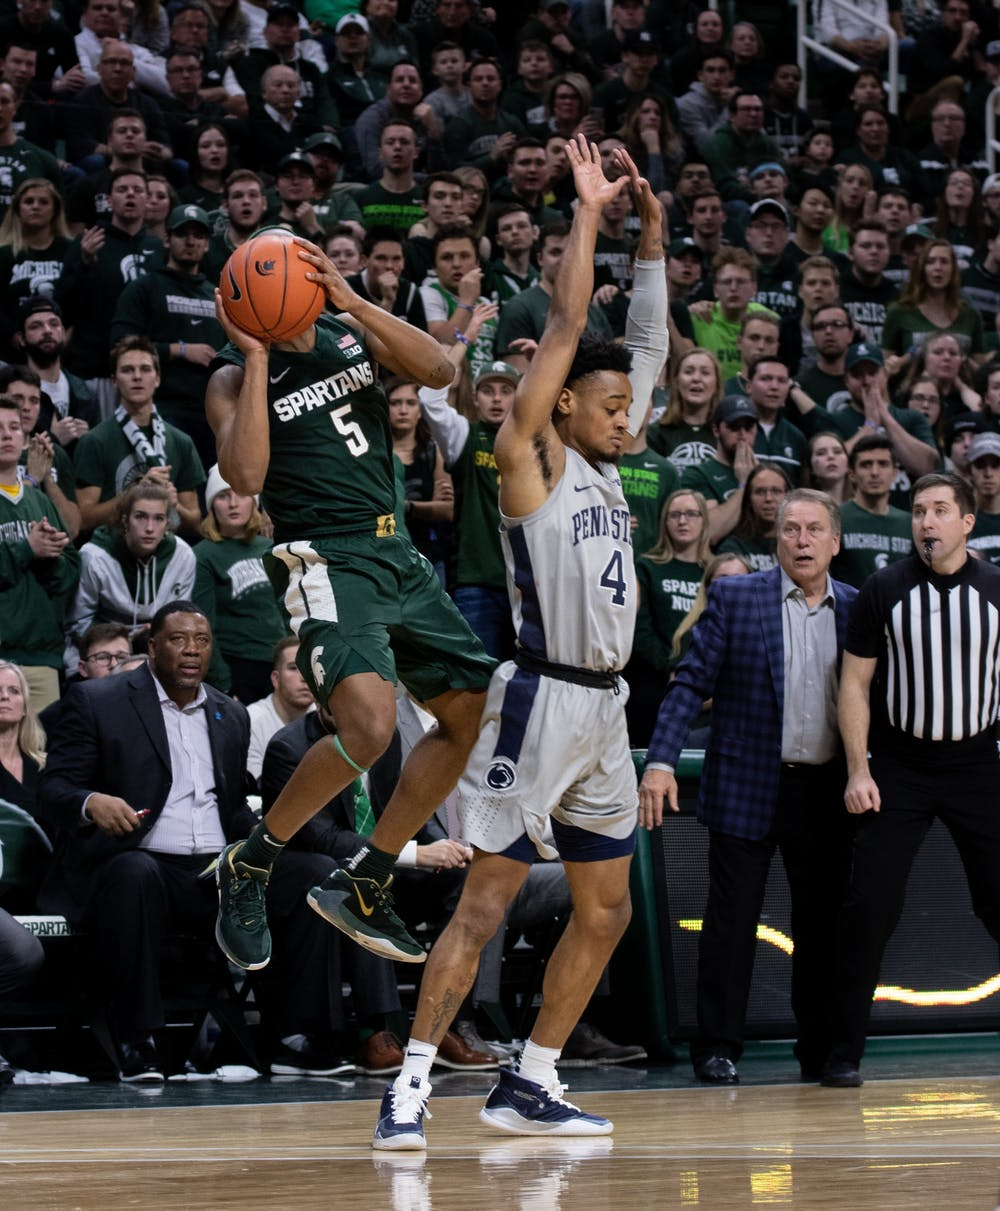 Cassius Winston (5) takes a shot in the final seconds of a basketball game against Penn State at the Breslin Center on Feb. 4, 2020. The Spartans fell to the Nittany Lions, 70-75.